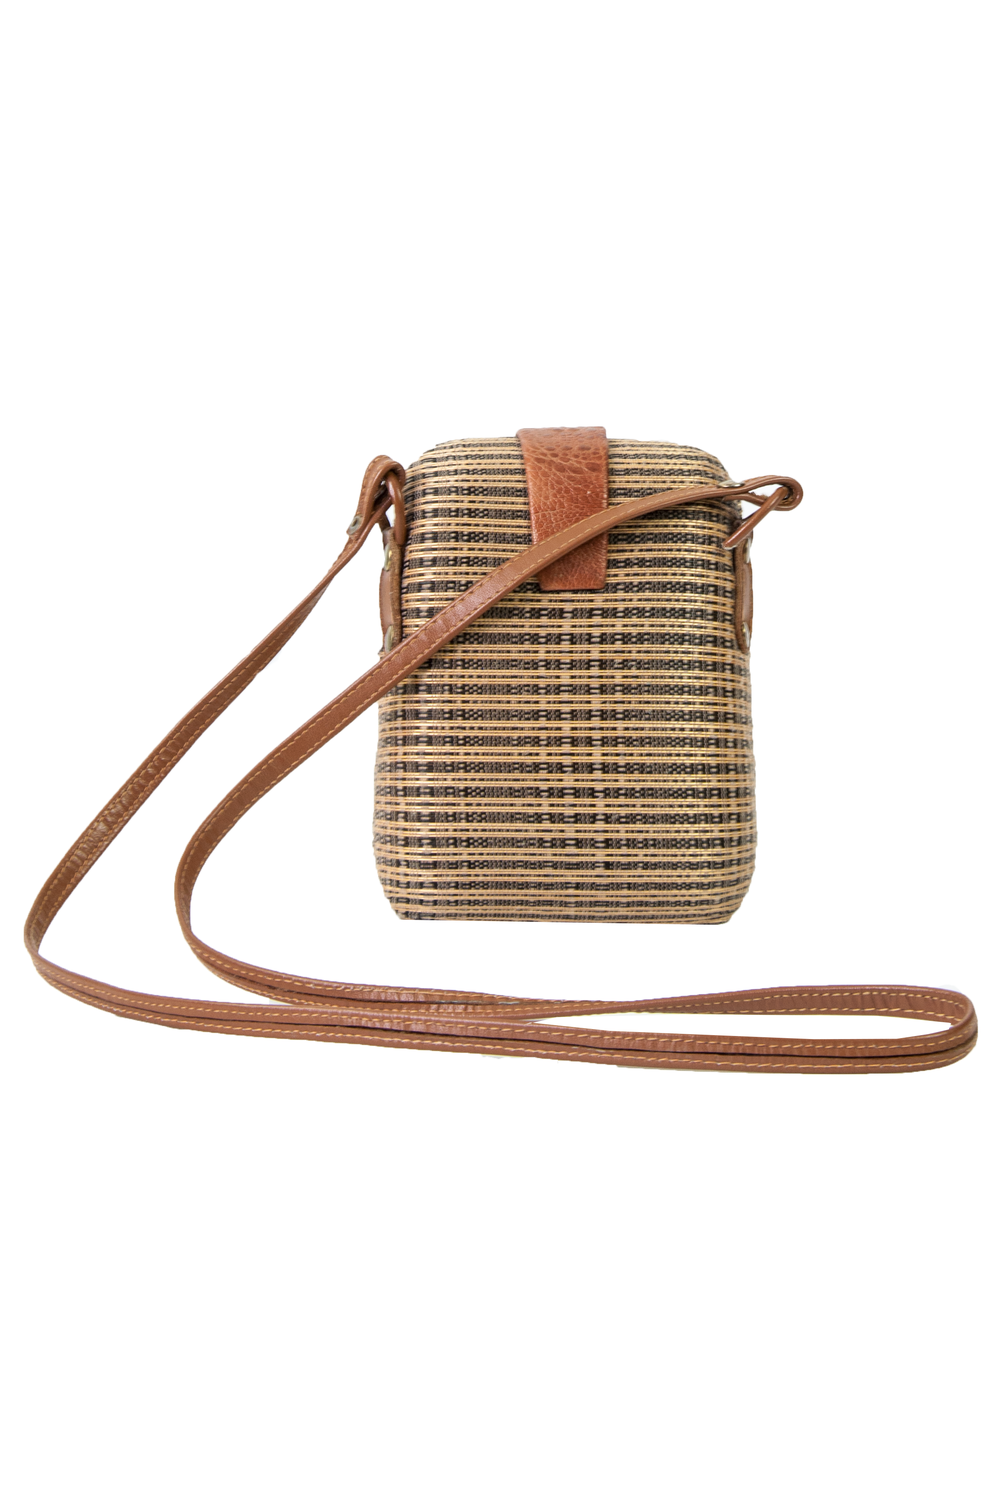 Vintage straw and brown leather bag